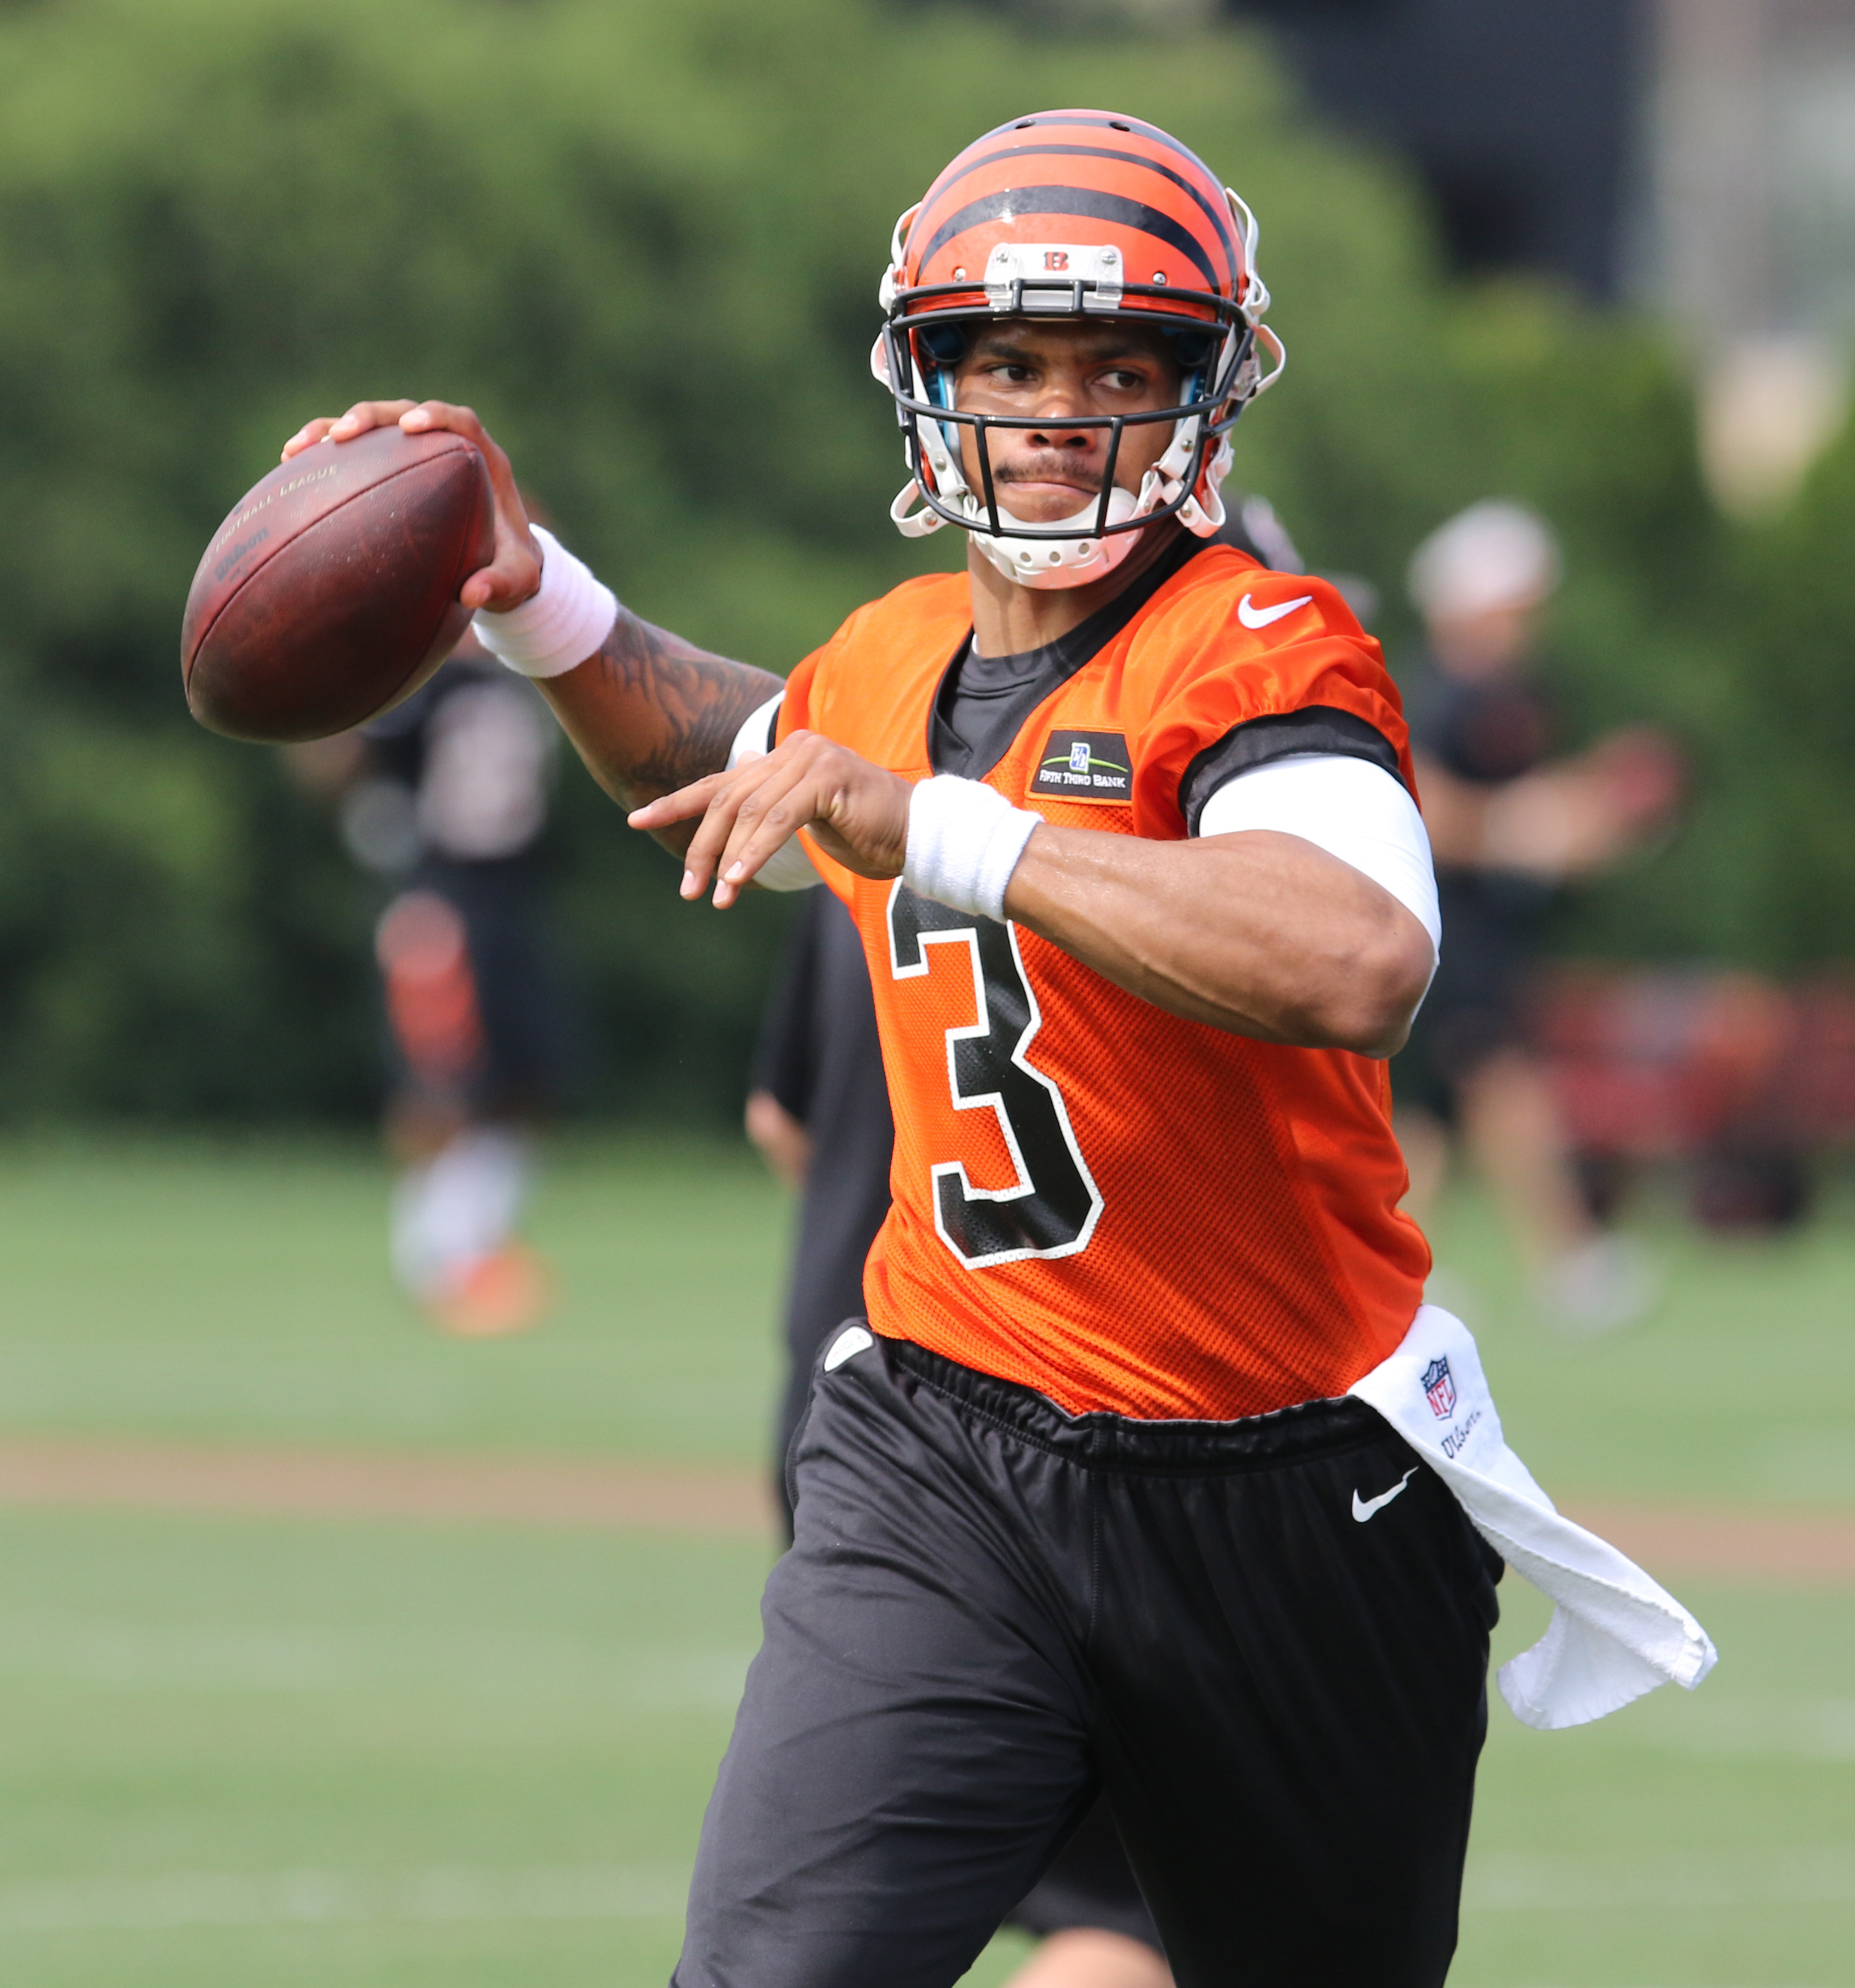 FILE - In this May 9, 2015, file photo, Cincinnati Bengals quarterback Terrelle Pryor throws during NFL football rookie minicamp in Cincinnati. The Cleveland Browns on Monday, June 22, 2015, have been awarded Pryor on waivers from Cincinnati and will give